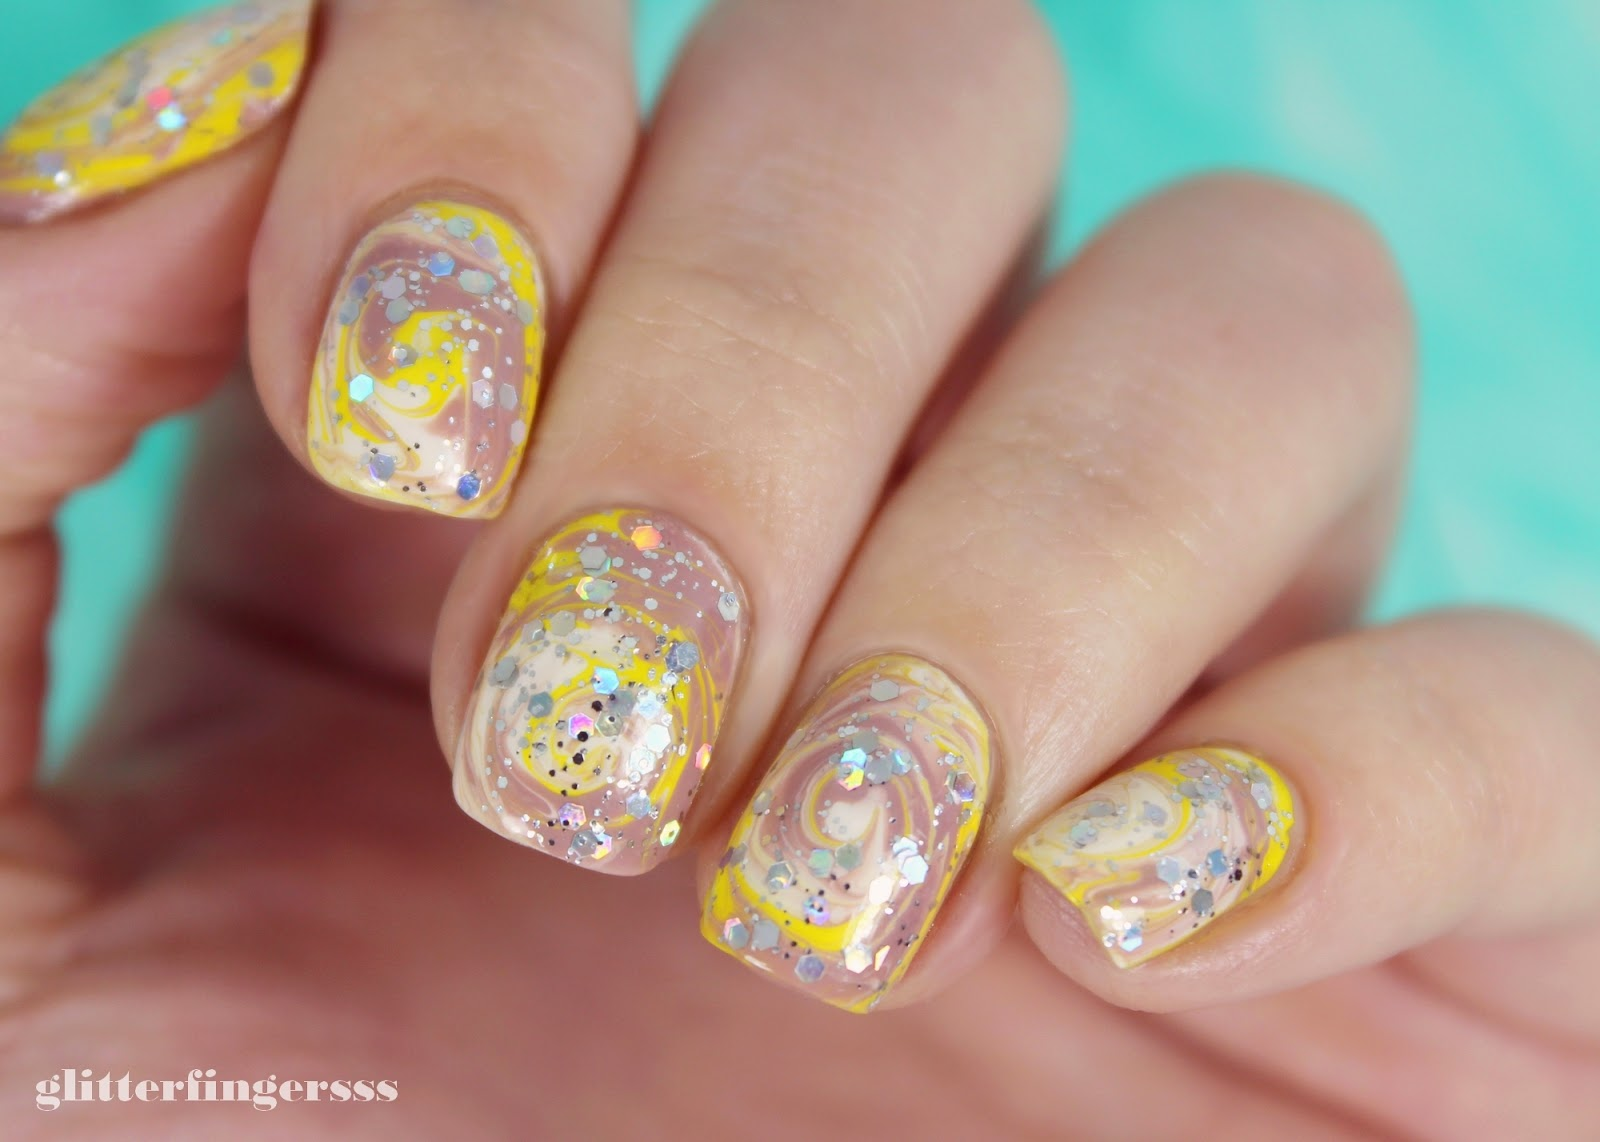 NAIL ART | Dry marble ~ Glitterfingersss in english